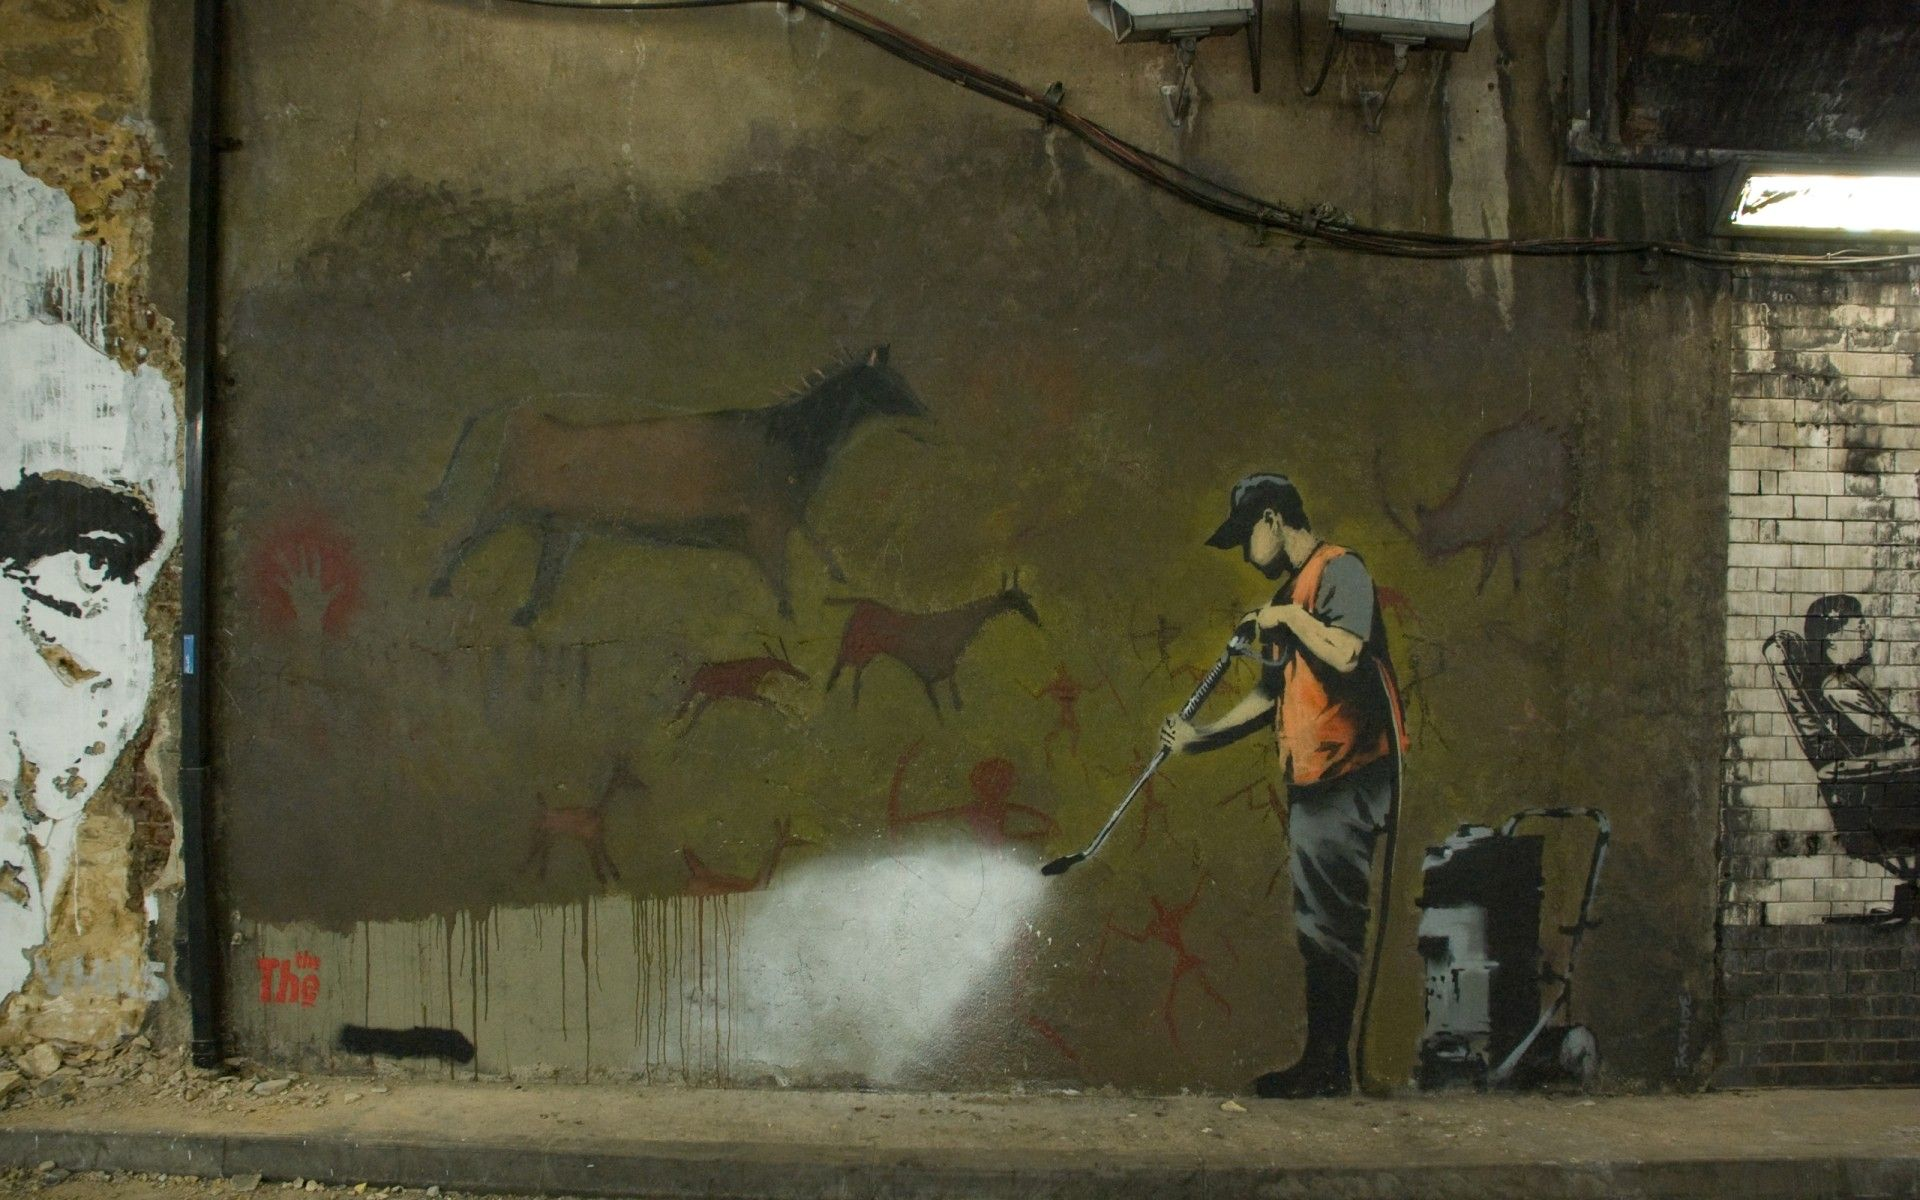 Leake Street London attributed to Banksy 22 x 28 Poster Print by Anonymous graffiti attributed to Banksy